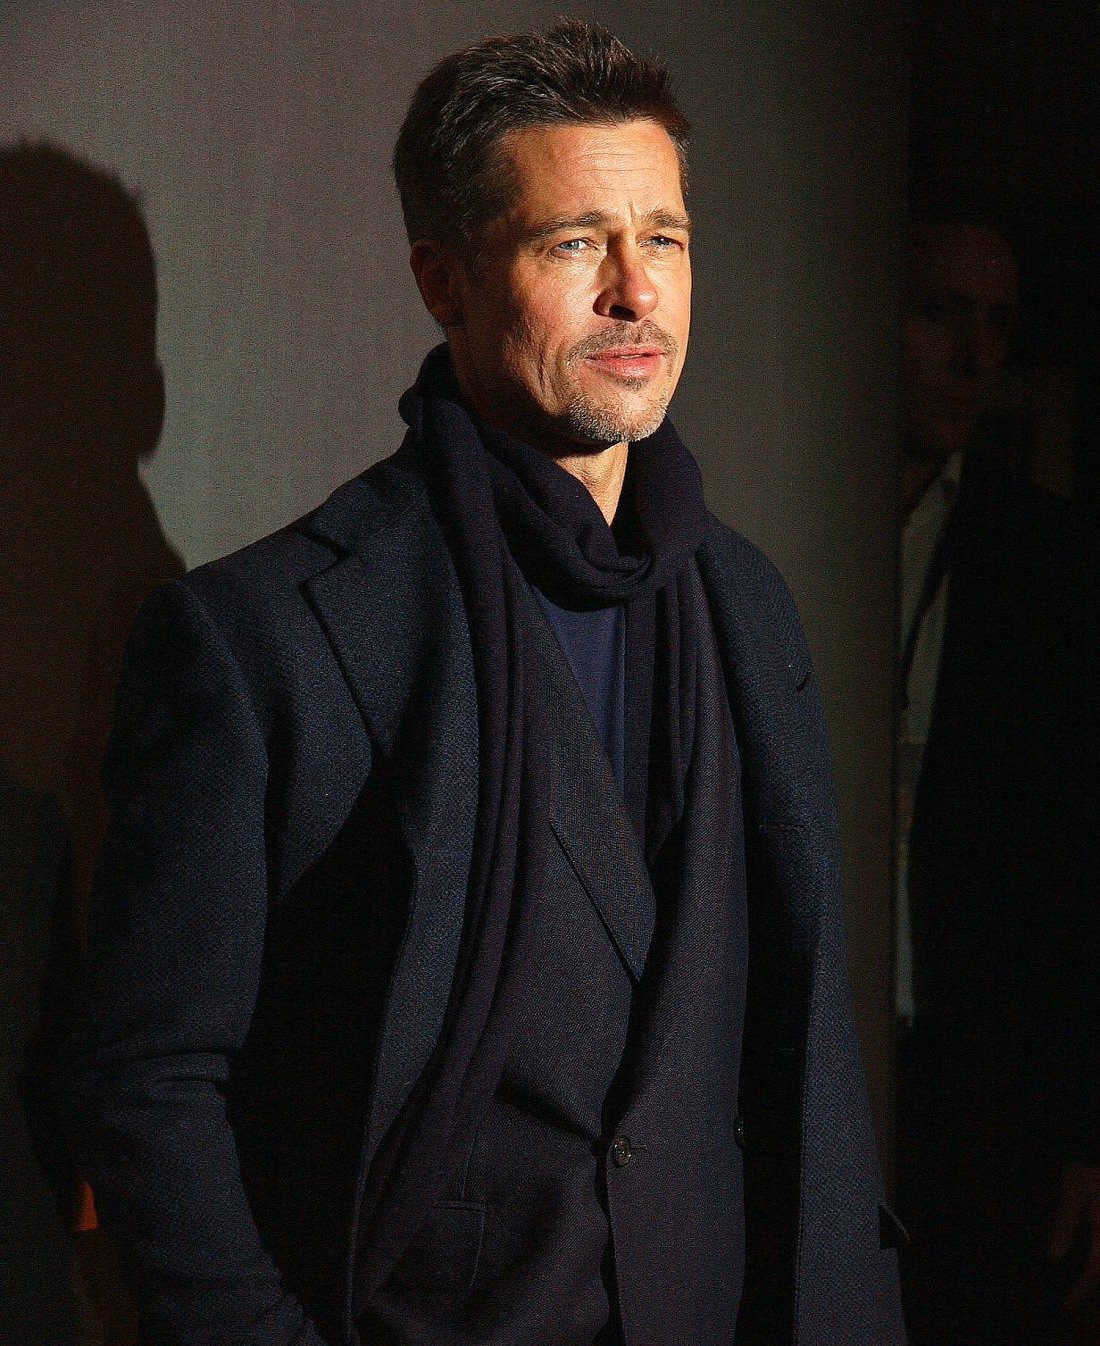 E!: Brad Pitt is 'not okay with his kids being away for months' with Angelina Jolie